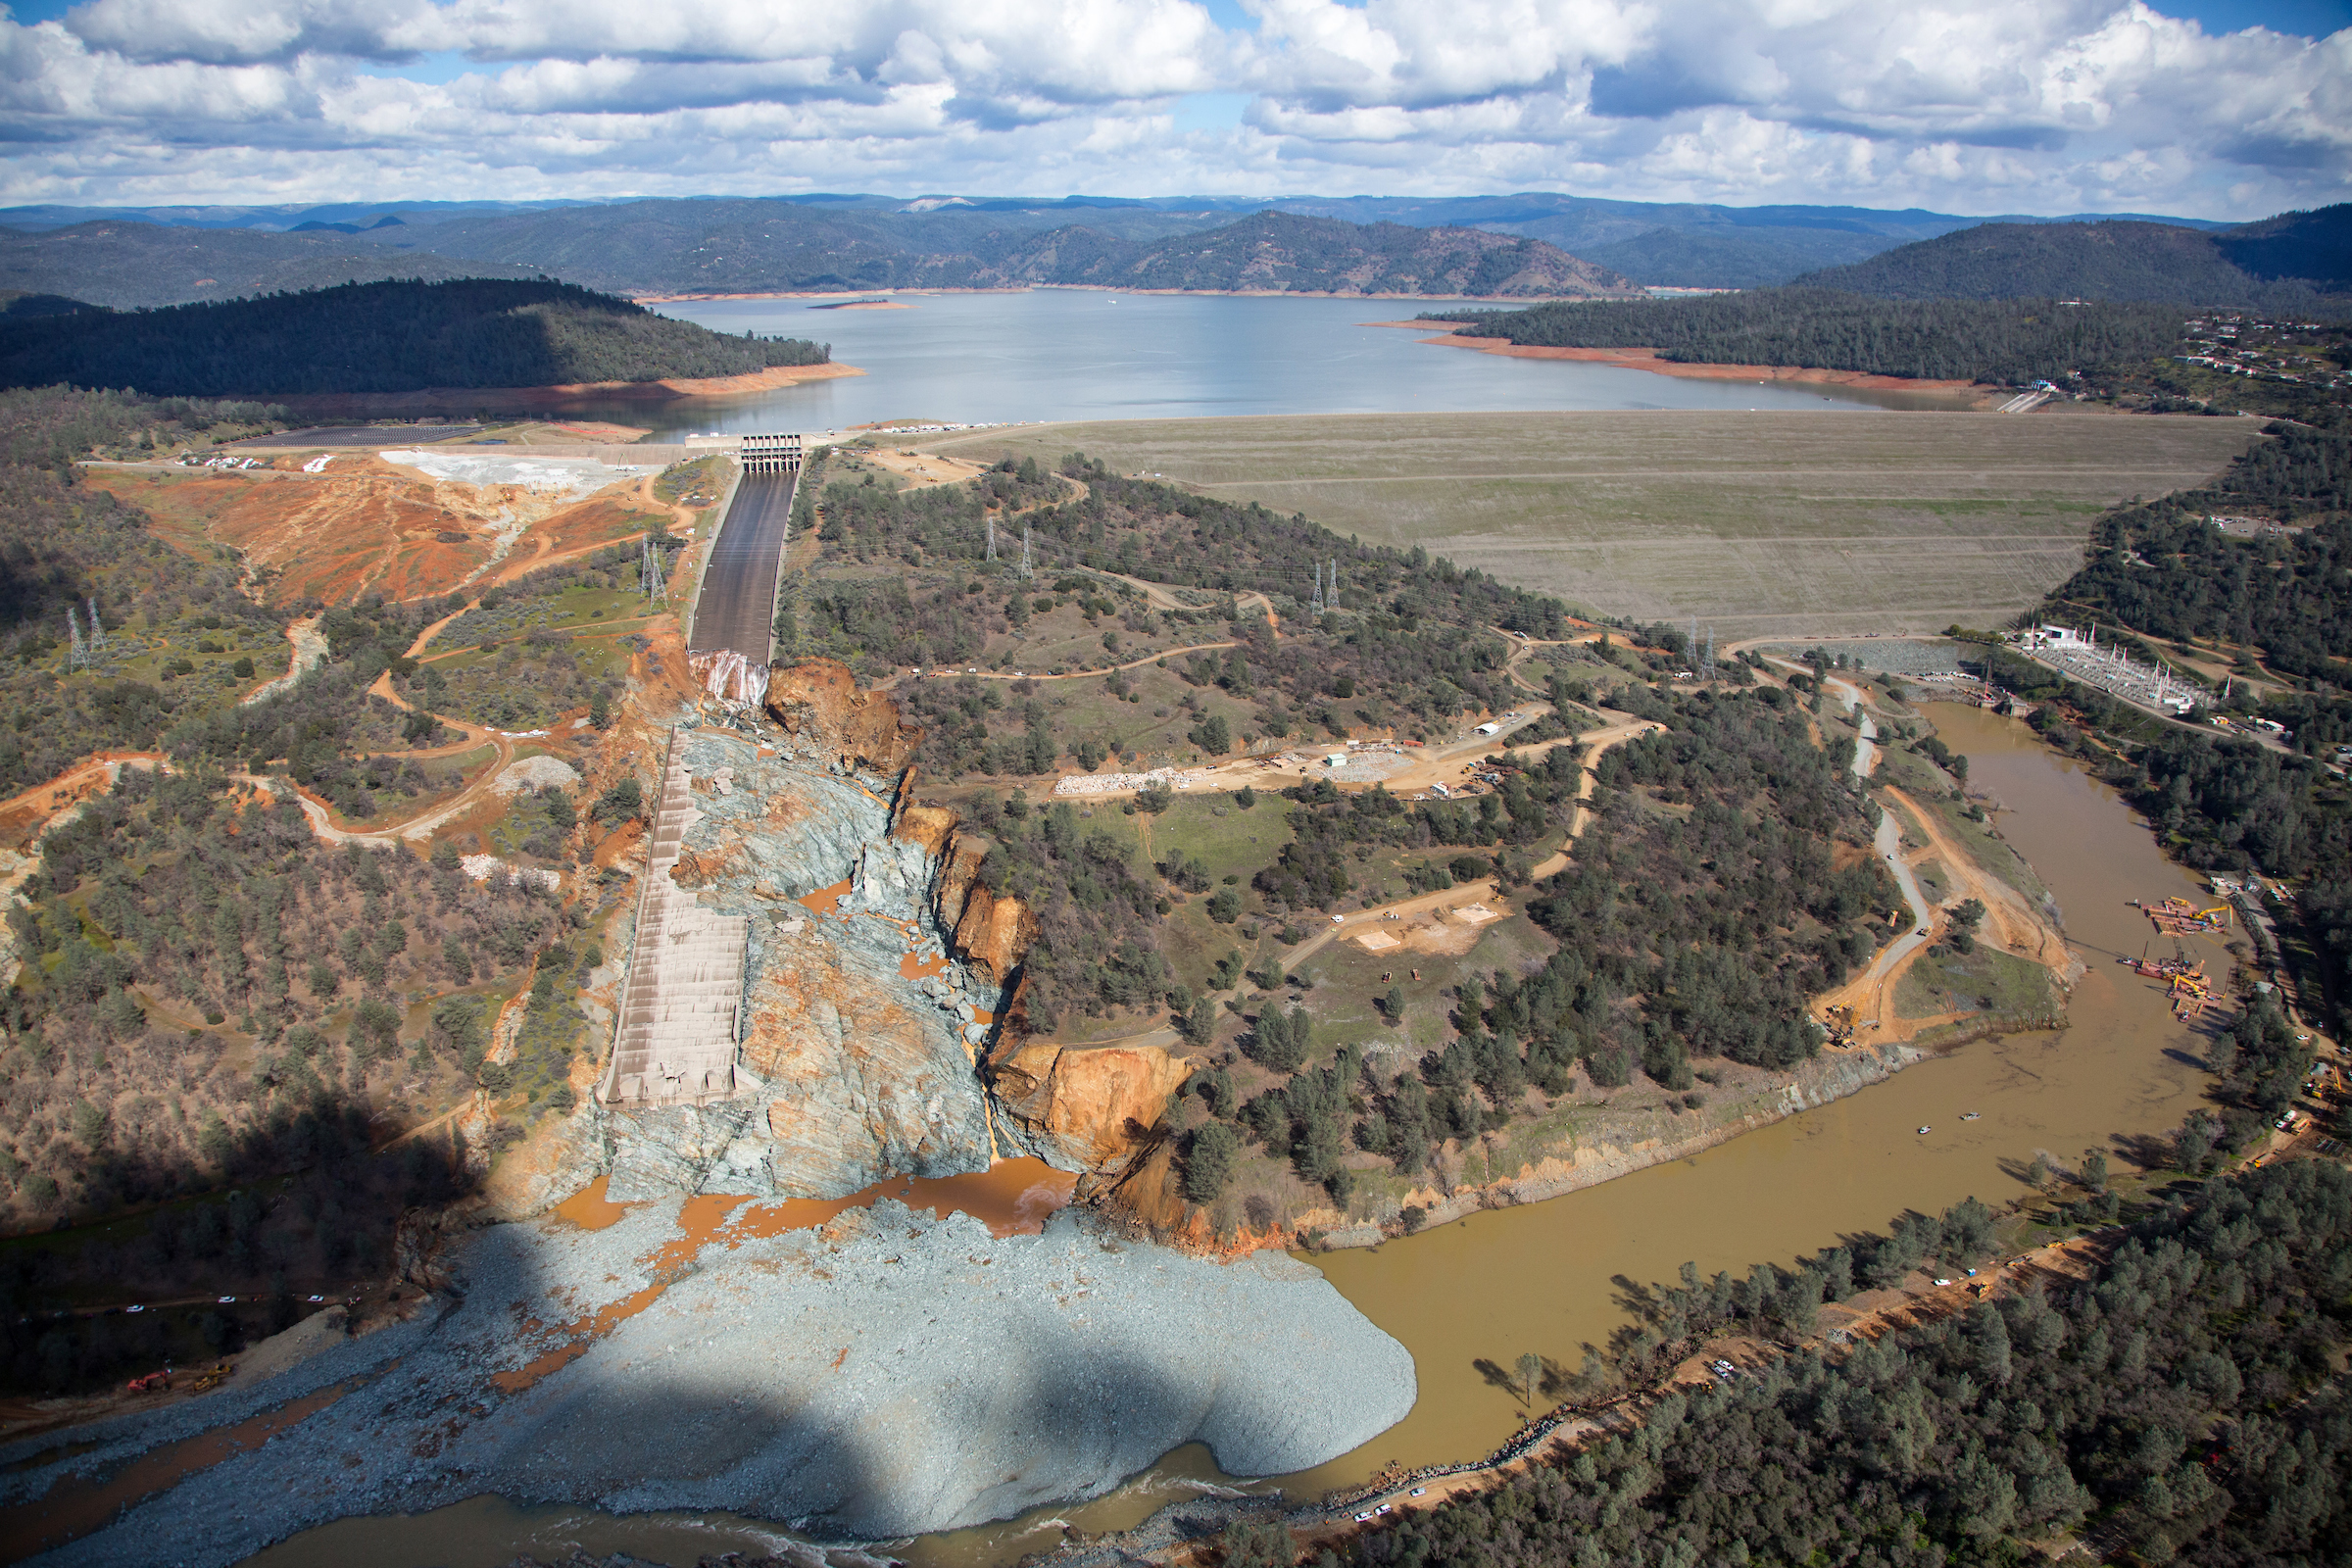 Learning from Failure | Oroville Dam spillway - New Civil Engineer